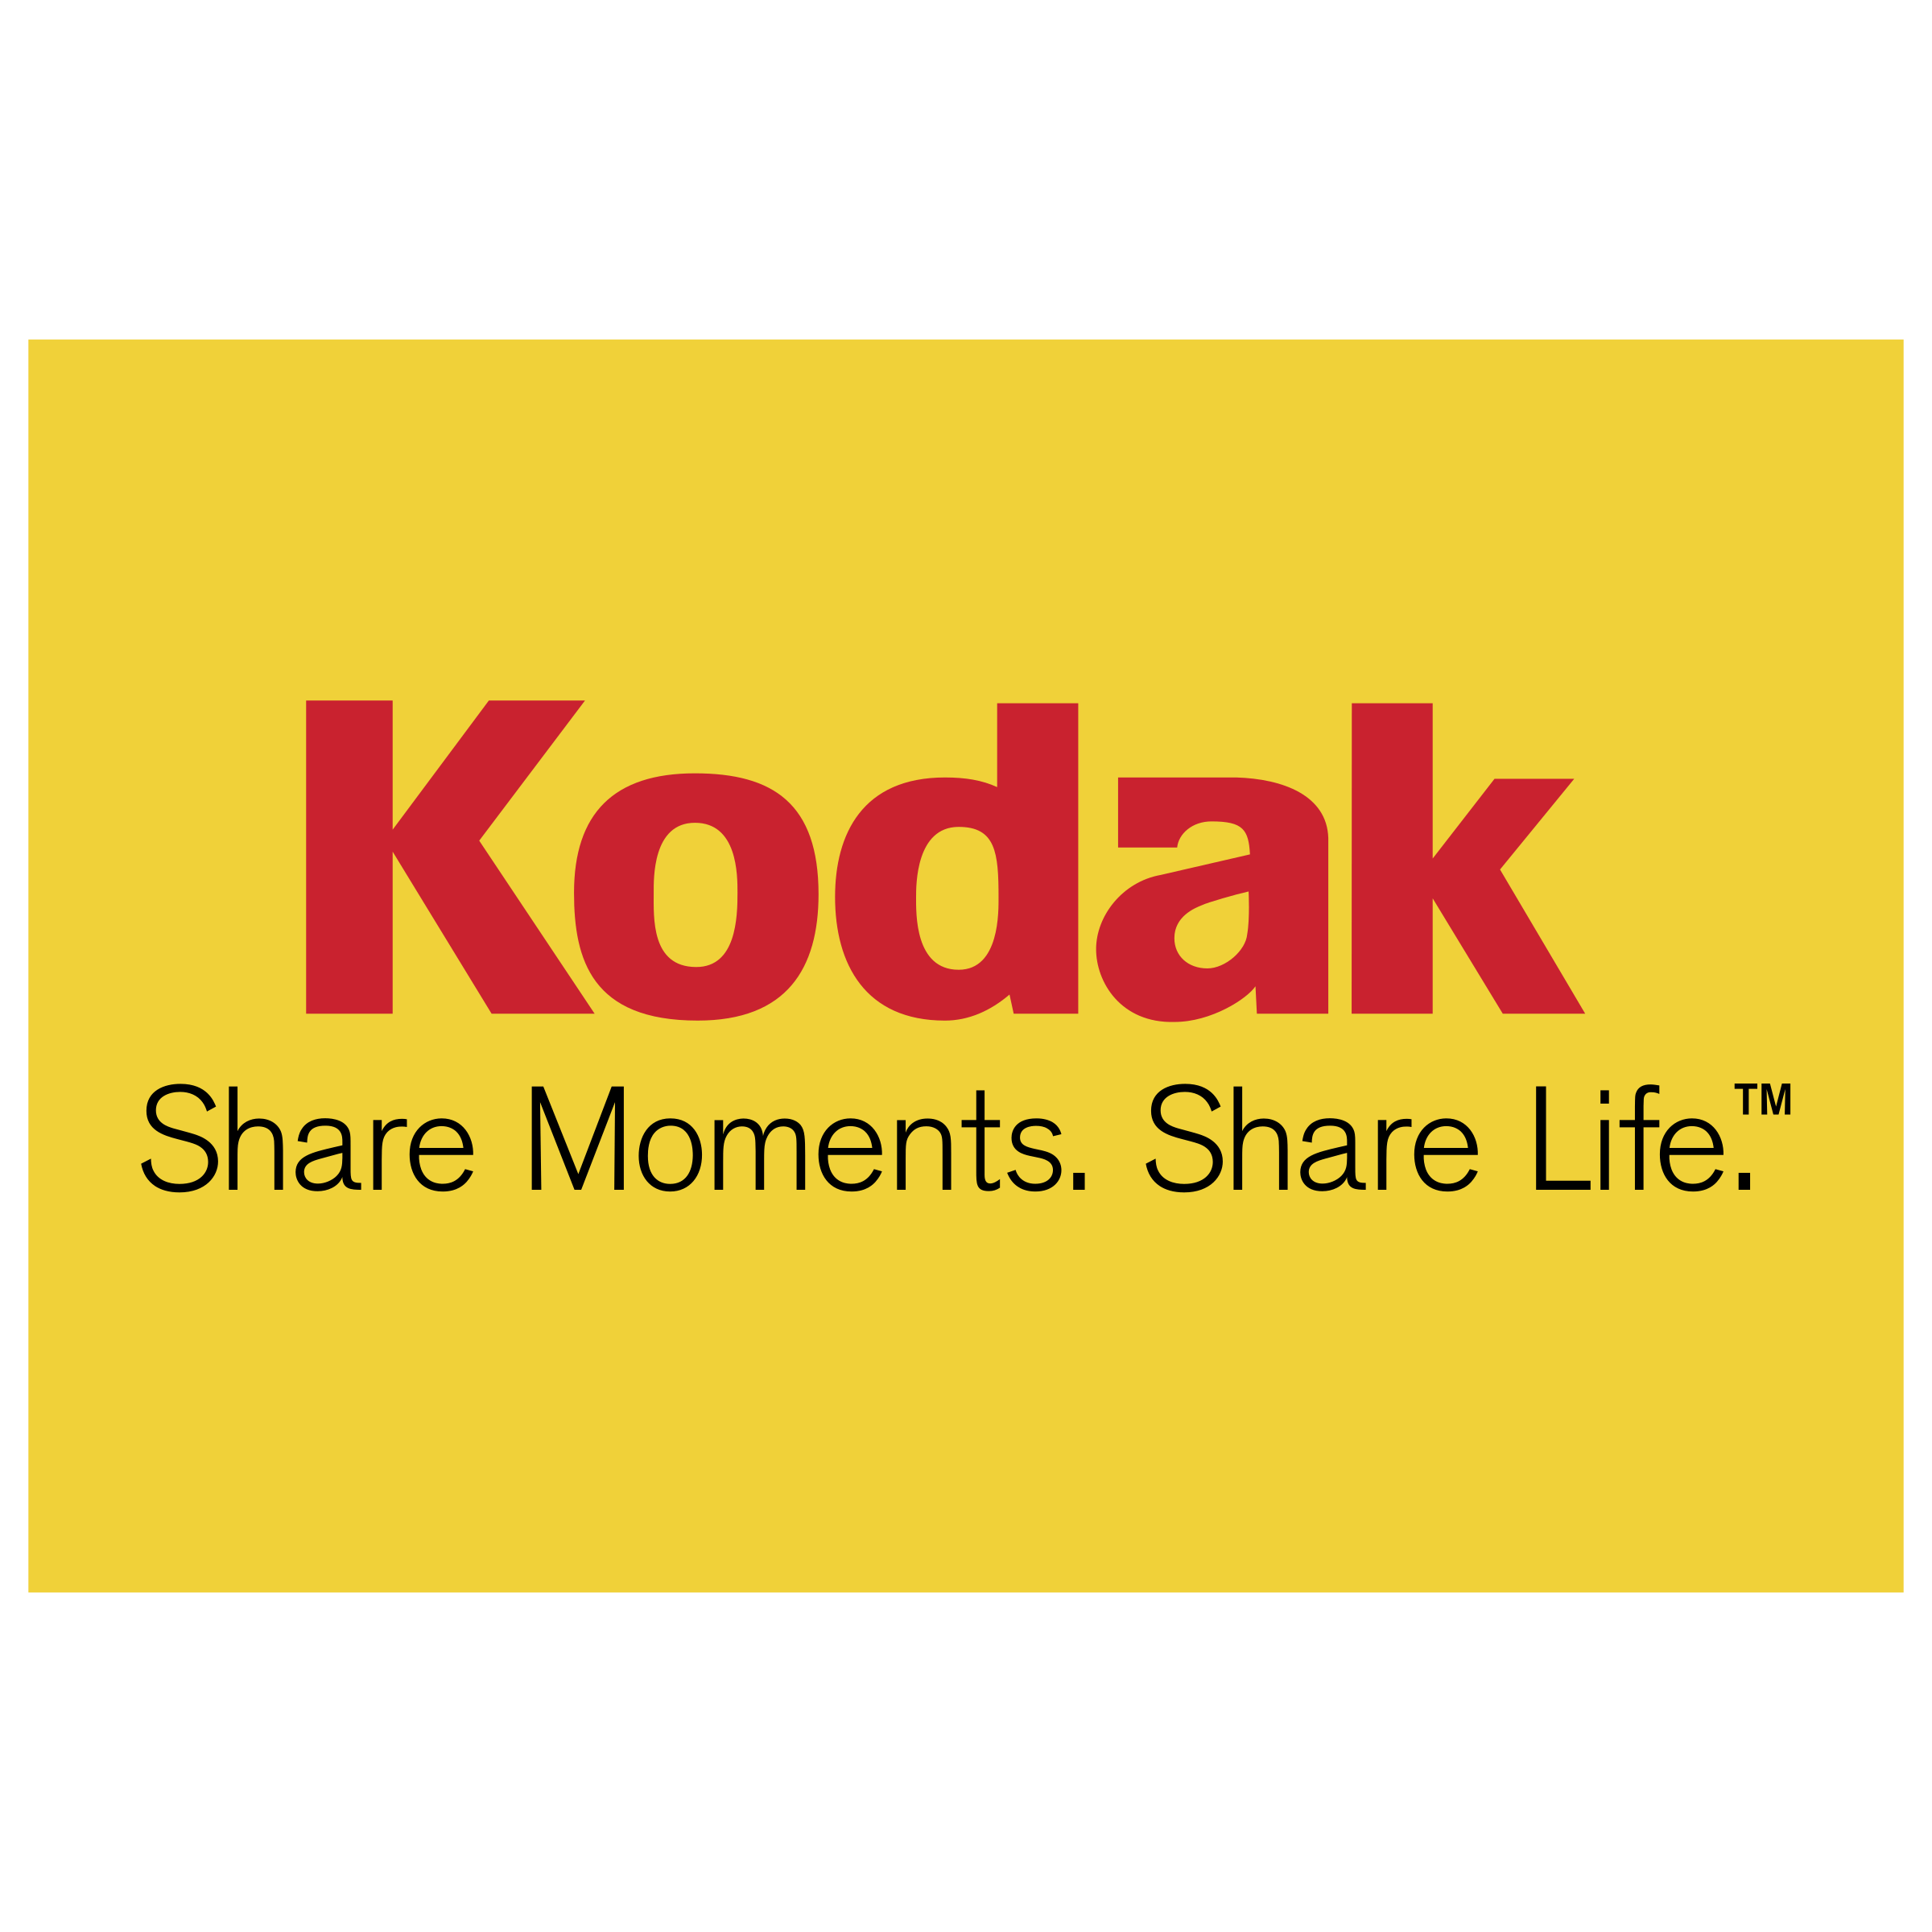 Kodak Logo - Kodak Logo PNG Transparent & SVG Vector - Freebie Supply